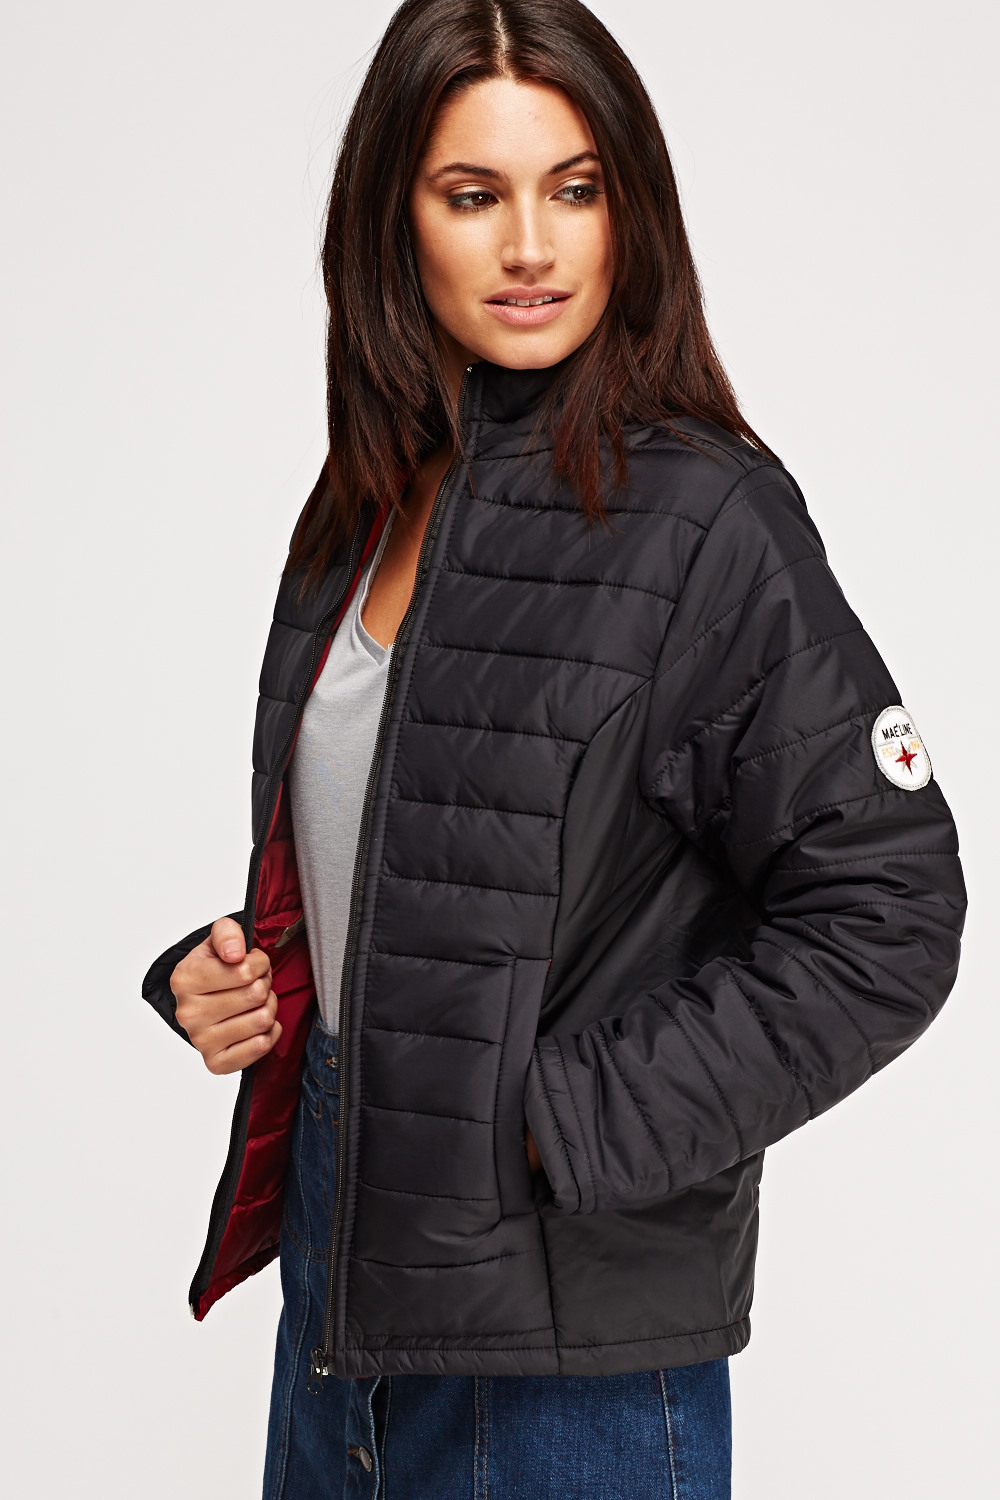 Quilted Puffa Jacket - Just £5